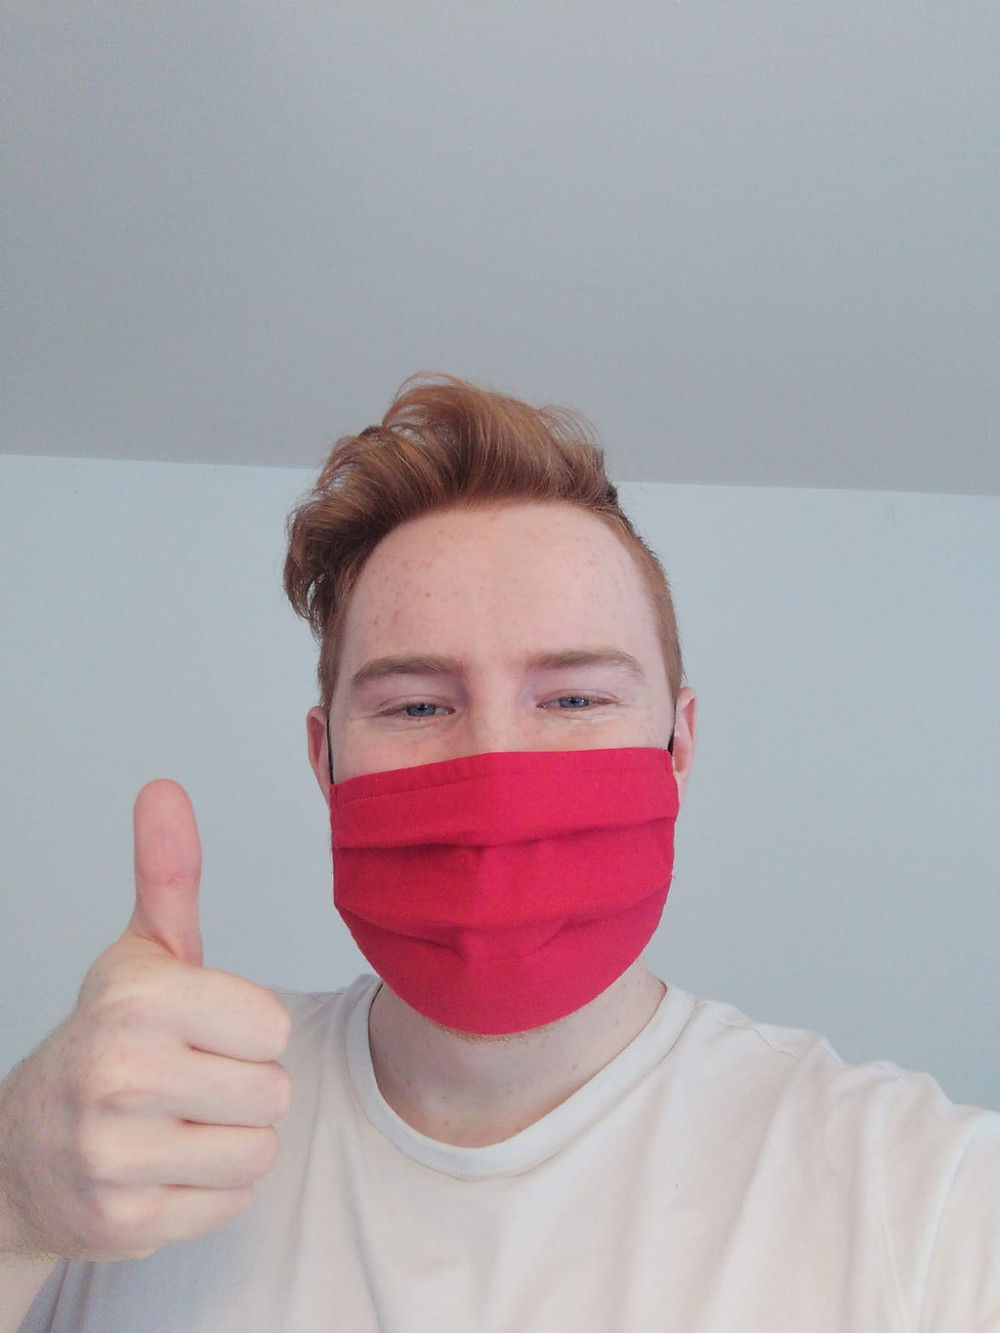 selfie of a man wearing a red mask doing a thumbs up